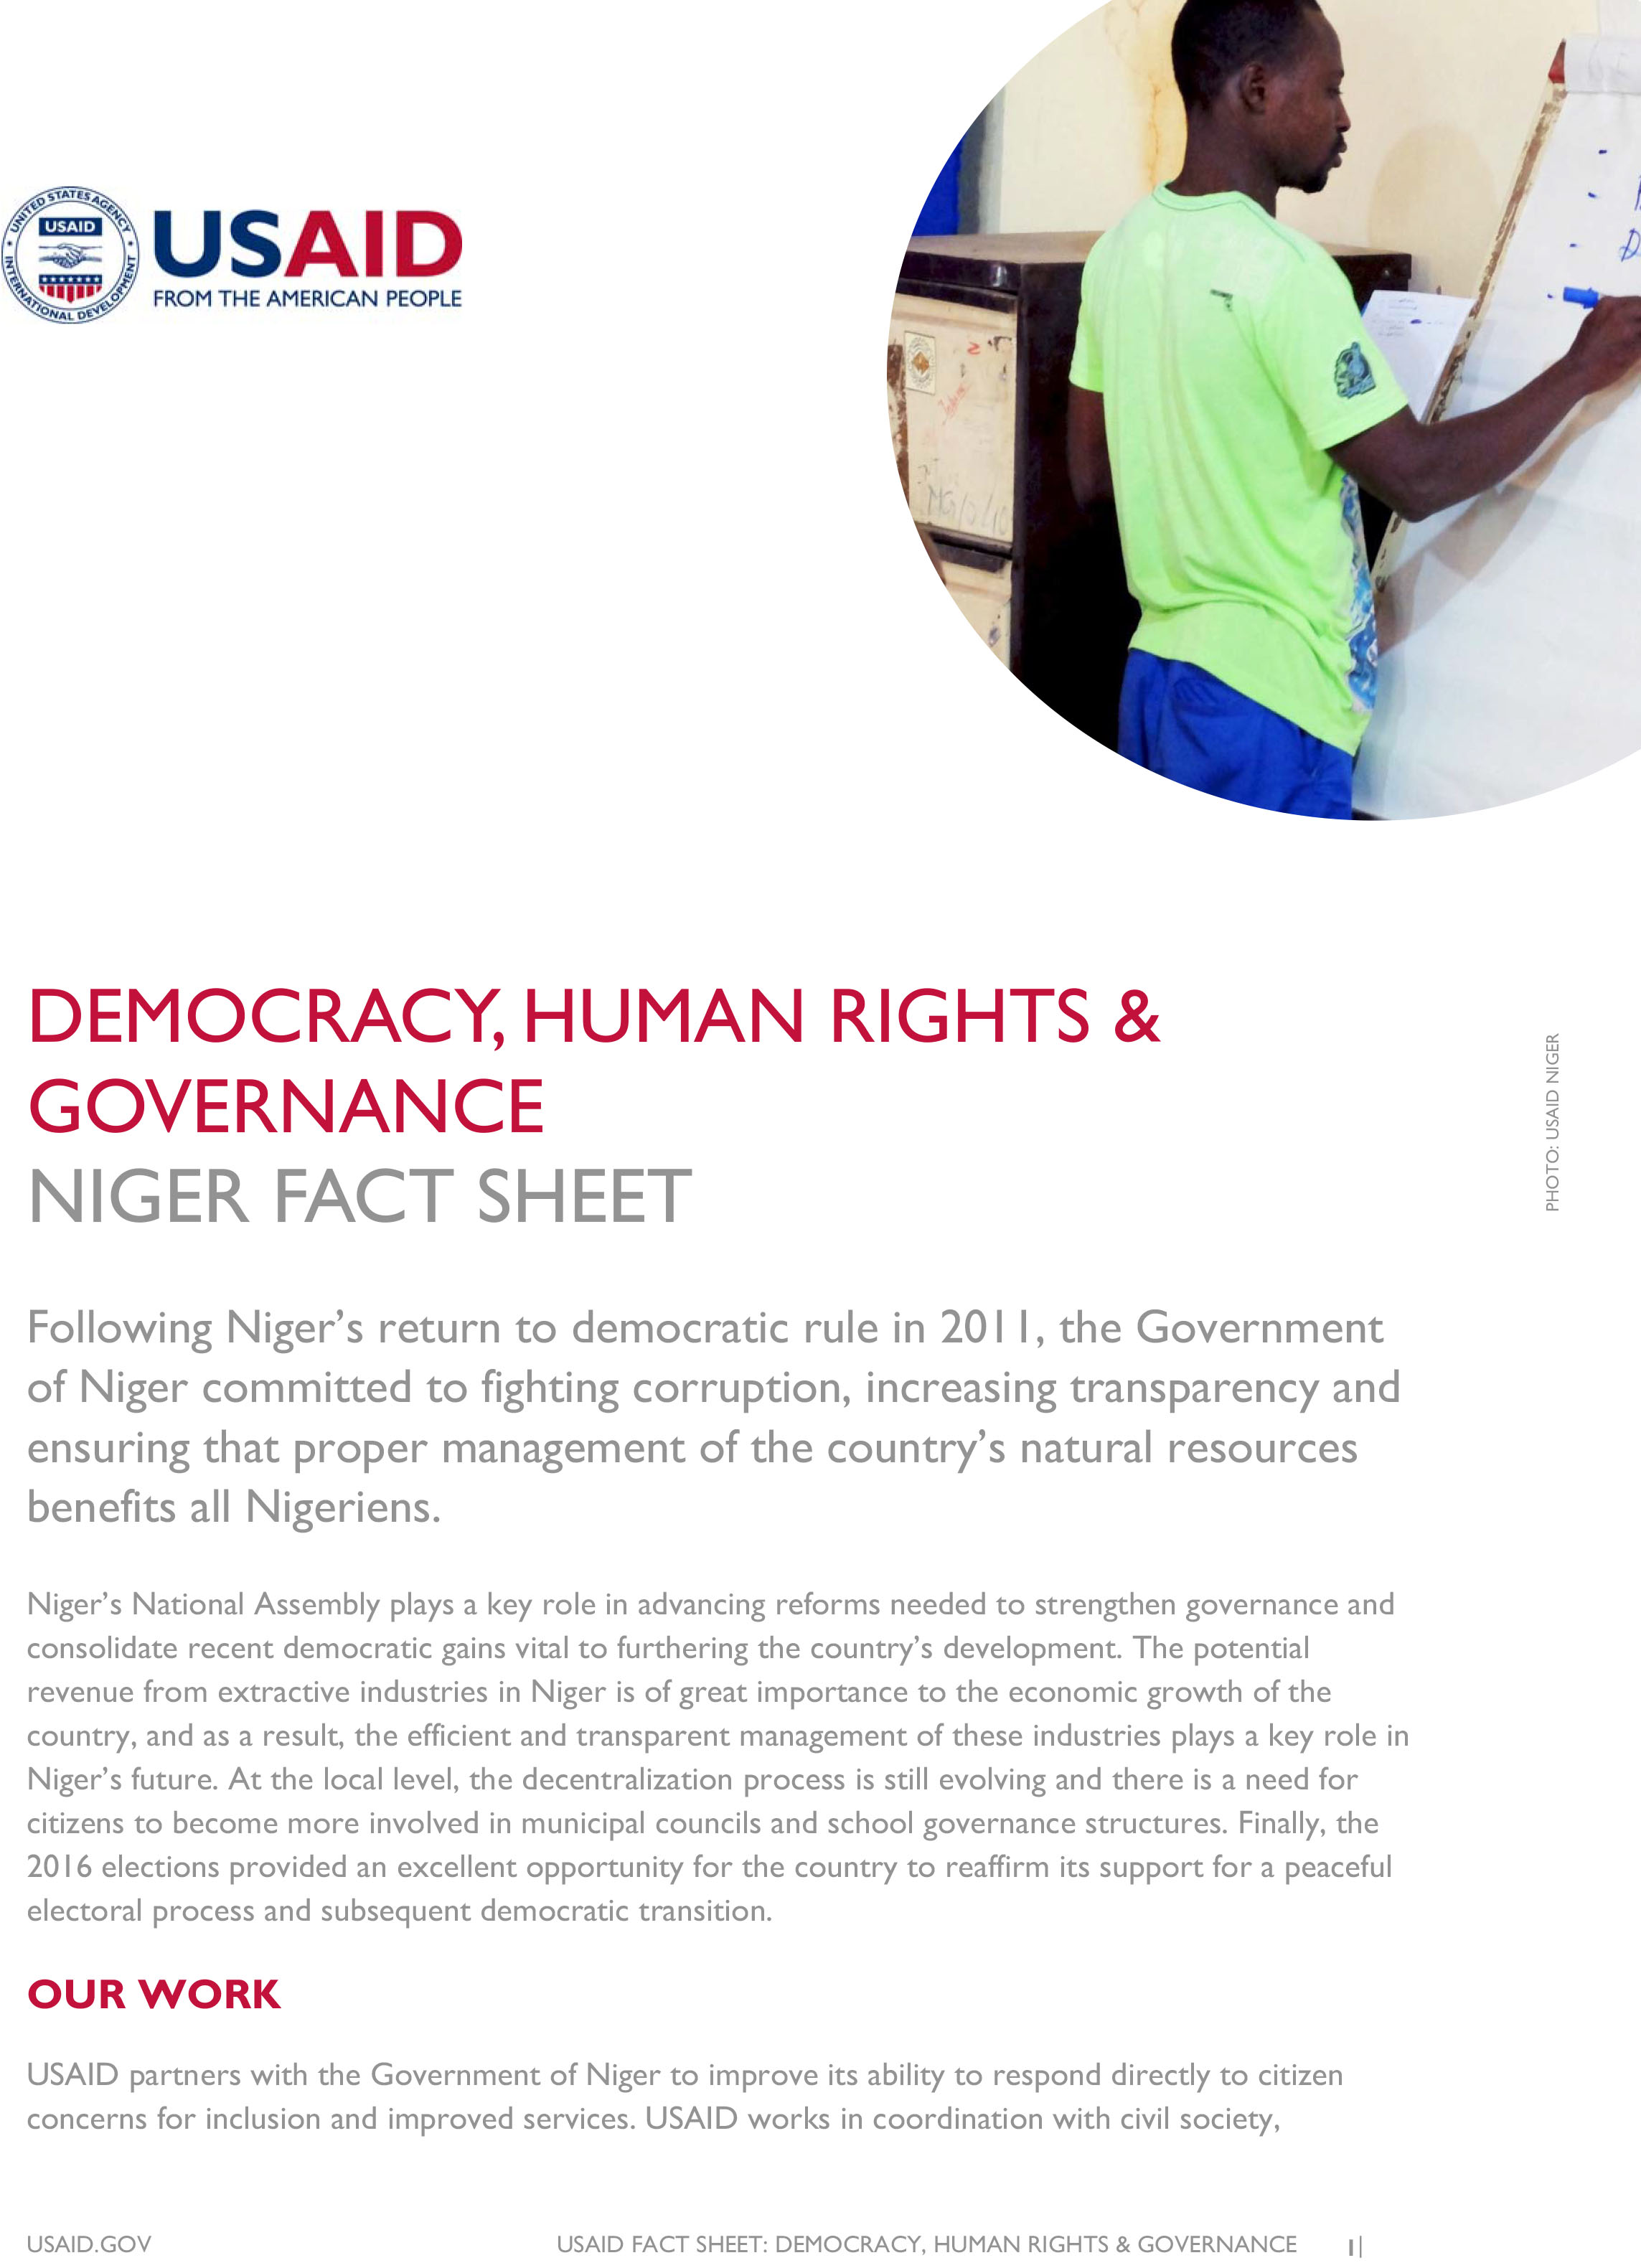 Niger Democracy, Human Rights and Governance Fact Sheet